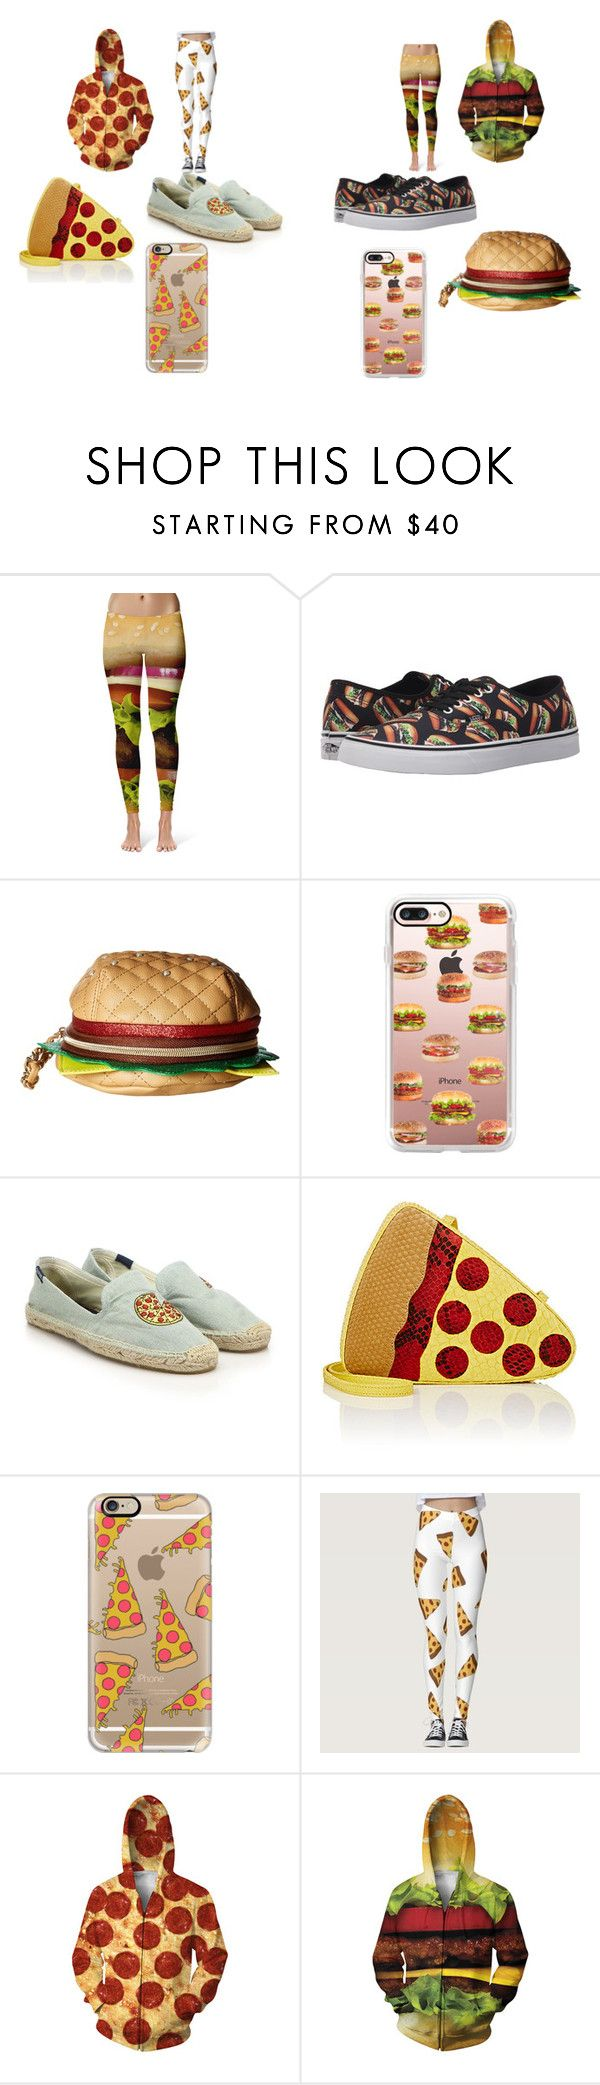 """Pizza V.S Hamburger"" by taco-lambert ❤ liked on Polyvore featuring Vans, Betsey Johnson, Casetify, Soludos and Gelareh Mizrahi"